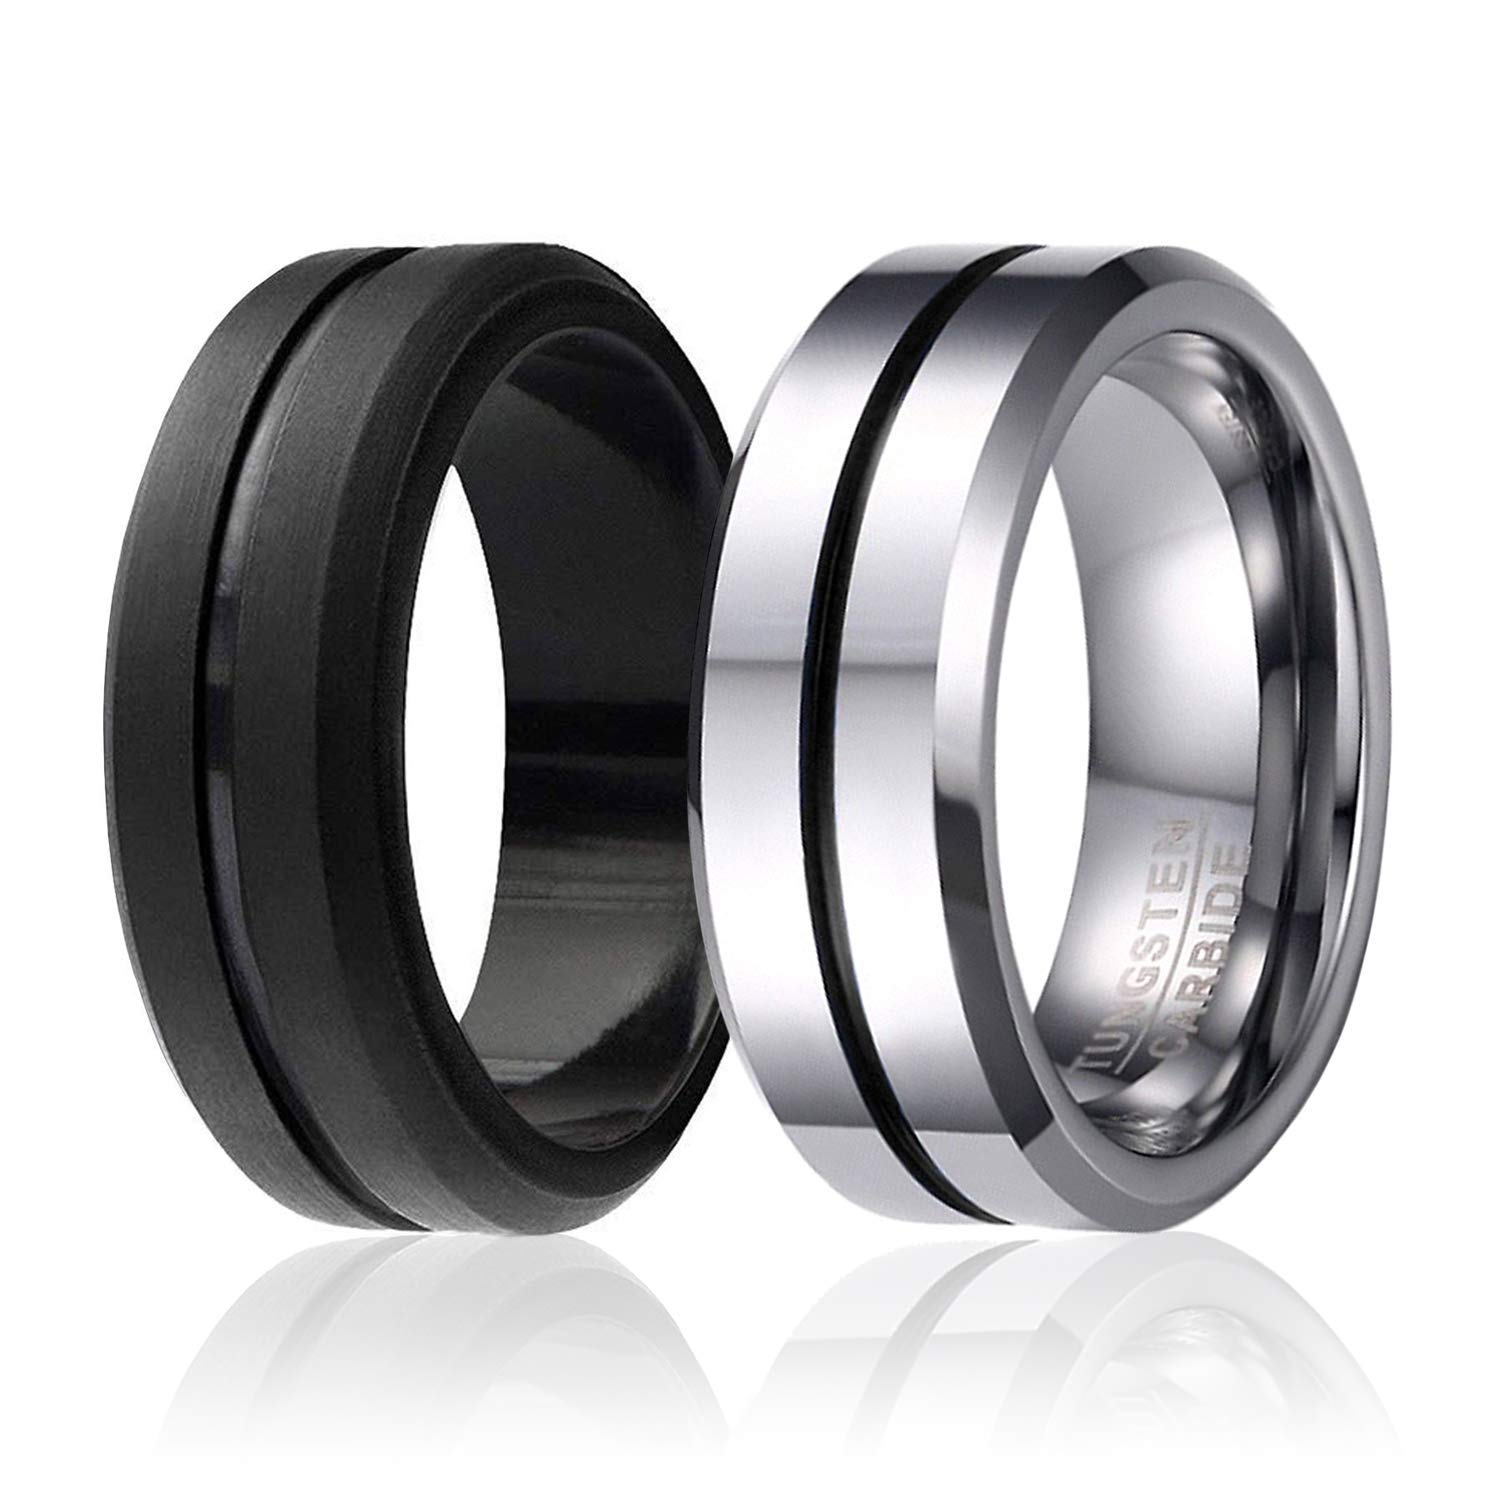 Silicone Wedding Ring Men 4 PACK Affordable Rubber Band Beveled Polished ROQ